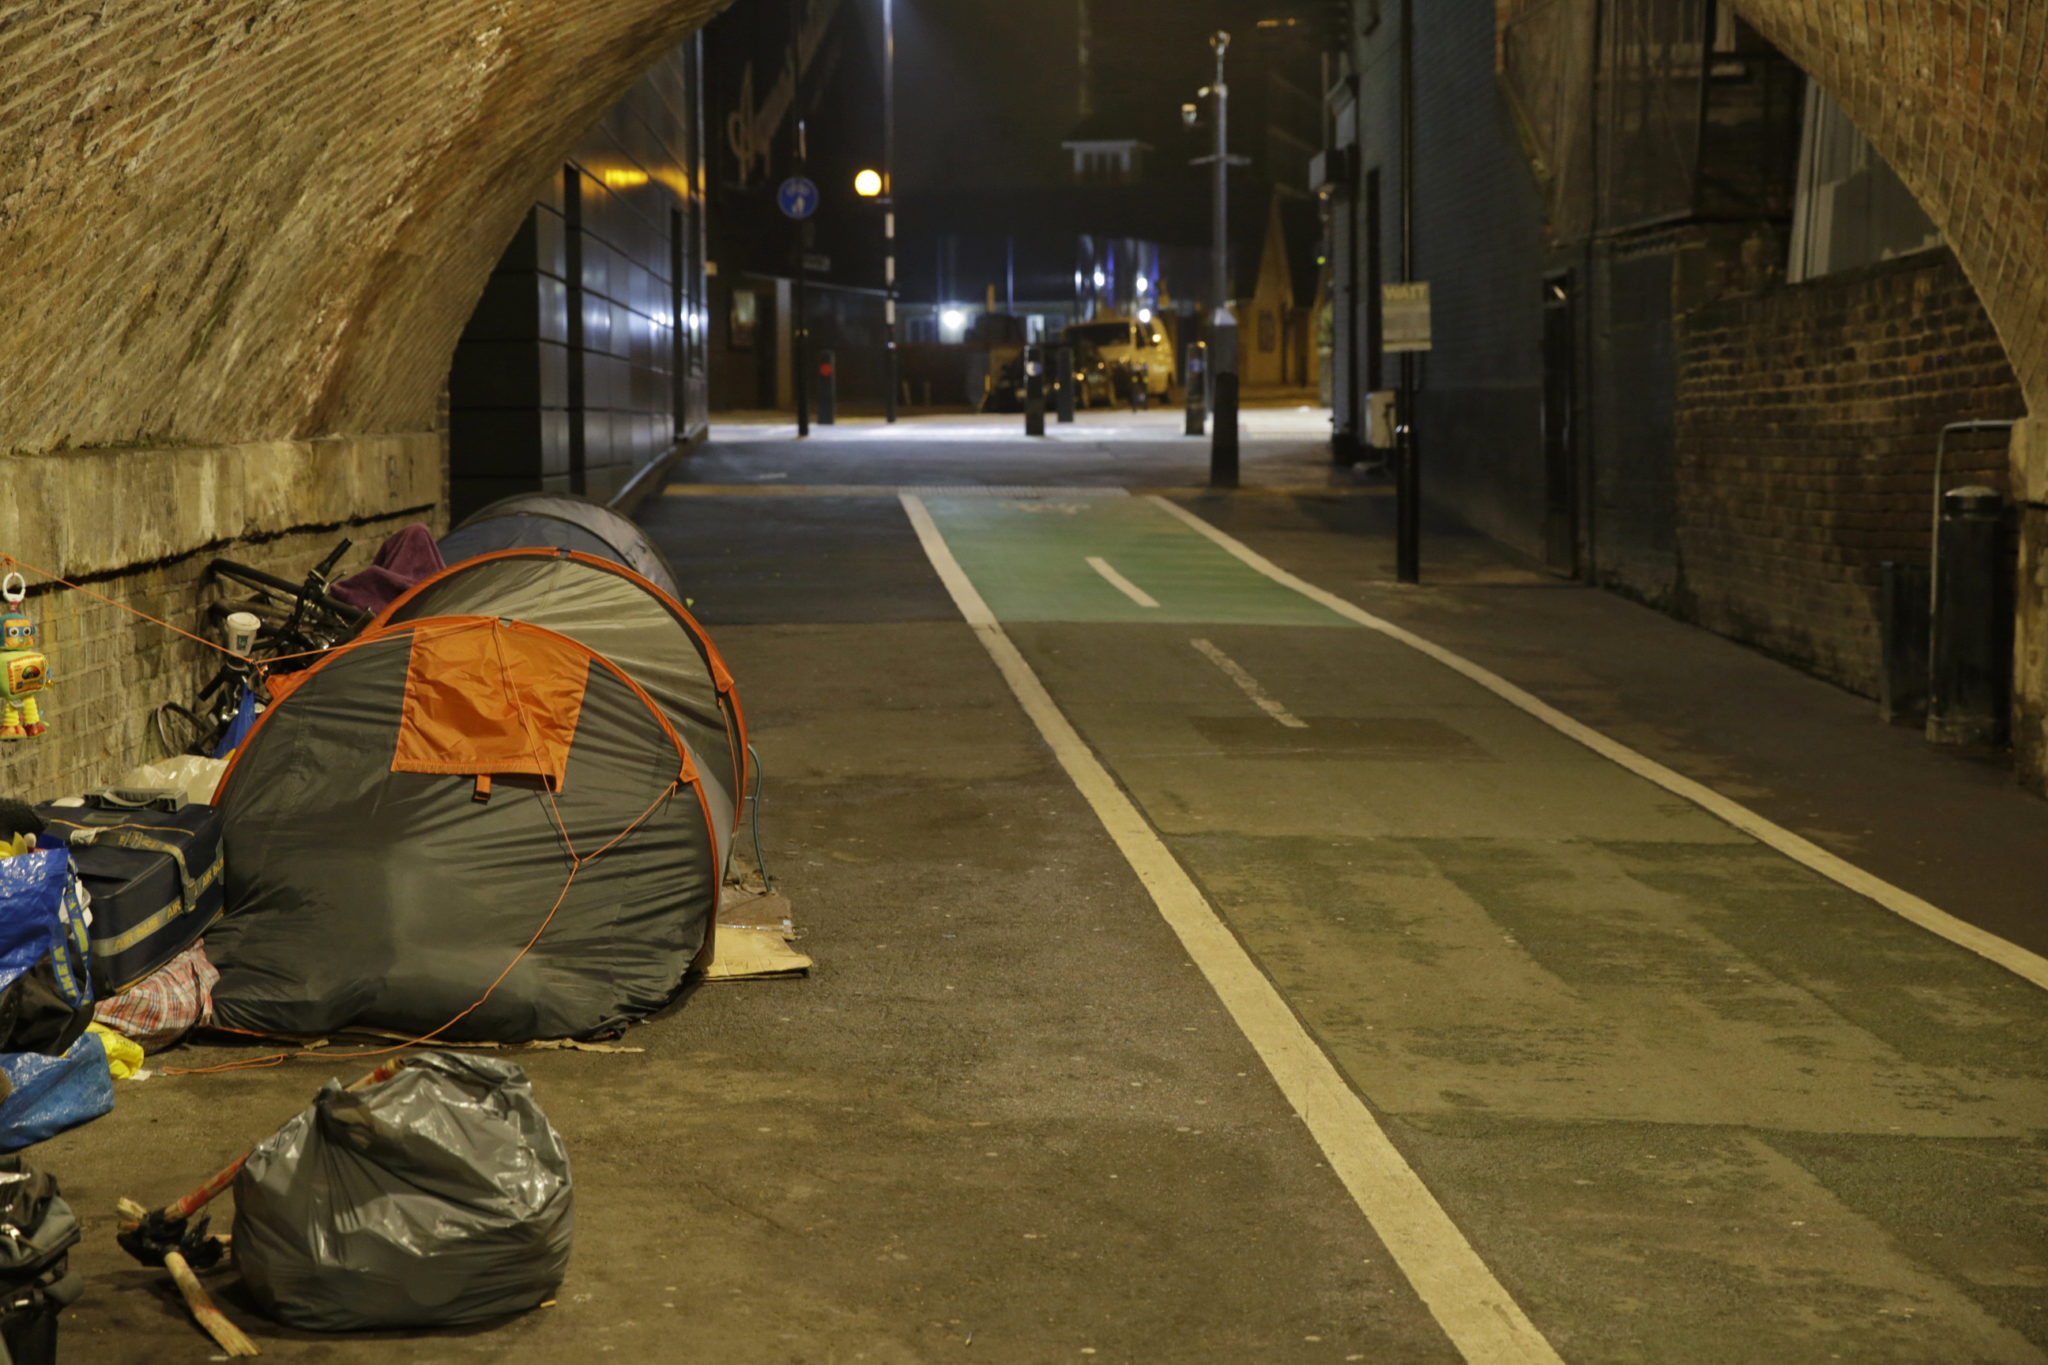 Supporting people rough sleeping during extreme cold weather